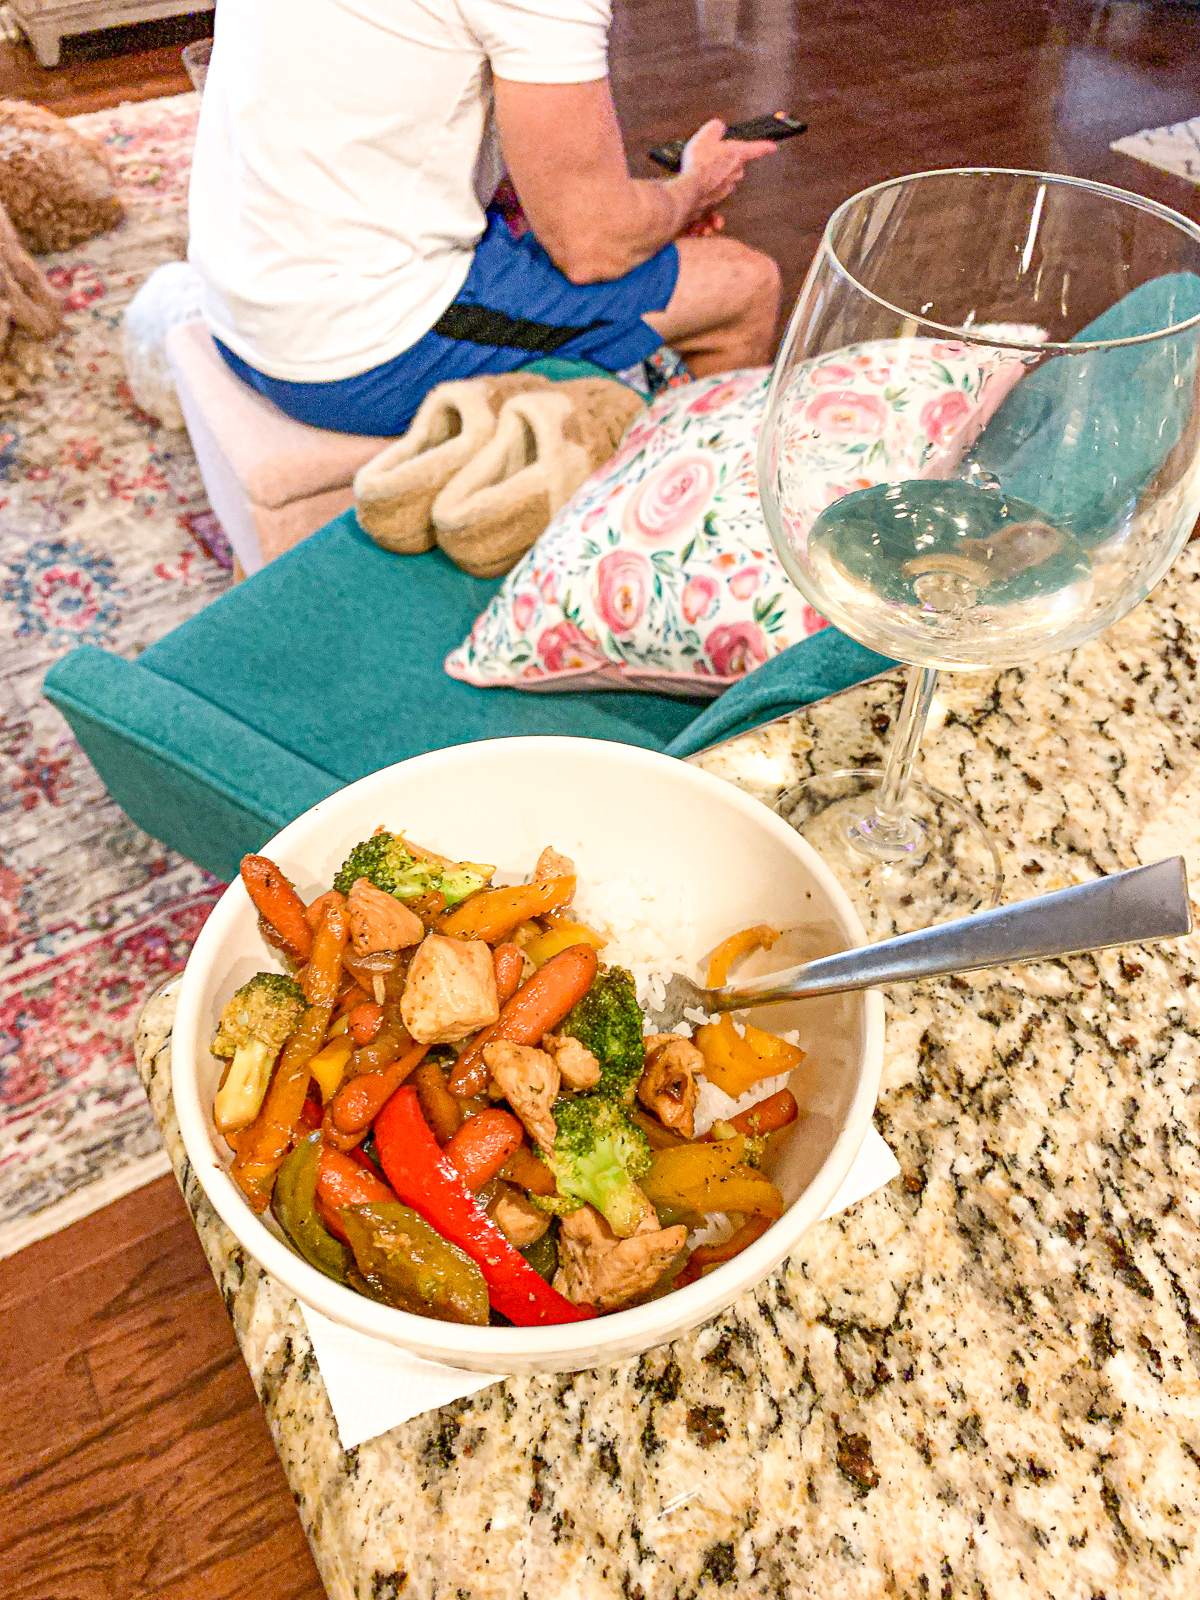 stir fry, healthy gluten free, low carb, chicken, stir fry, peppers, onions, healthy food, blogging